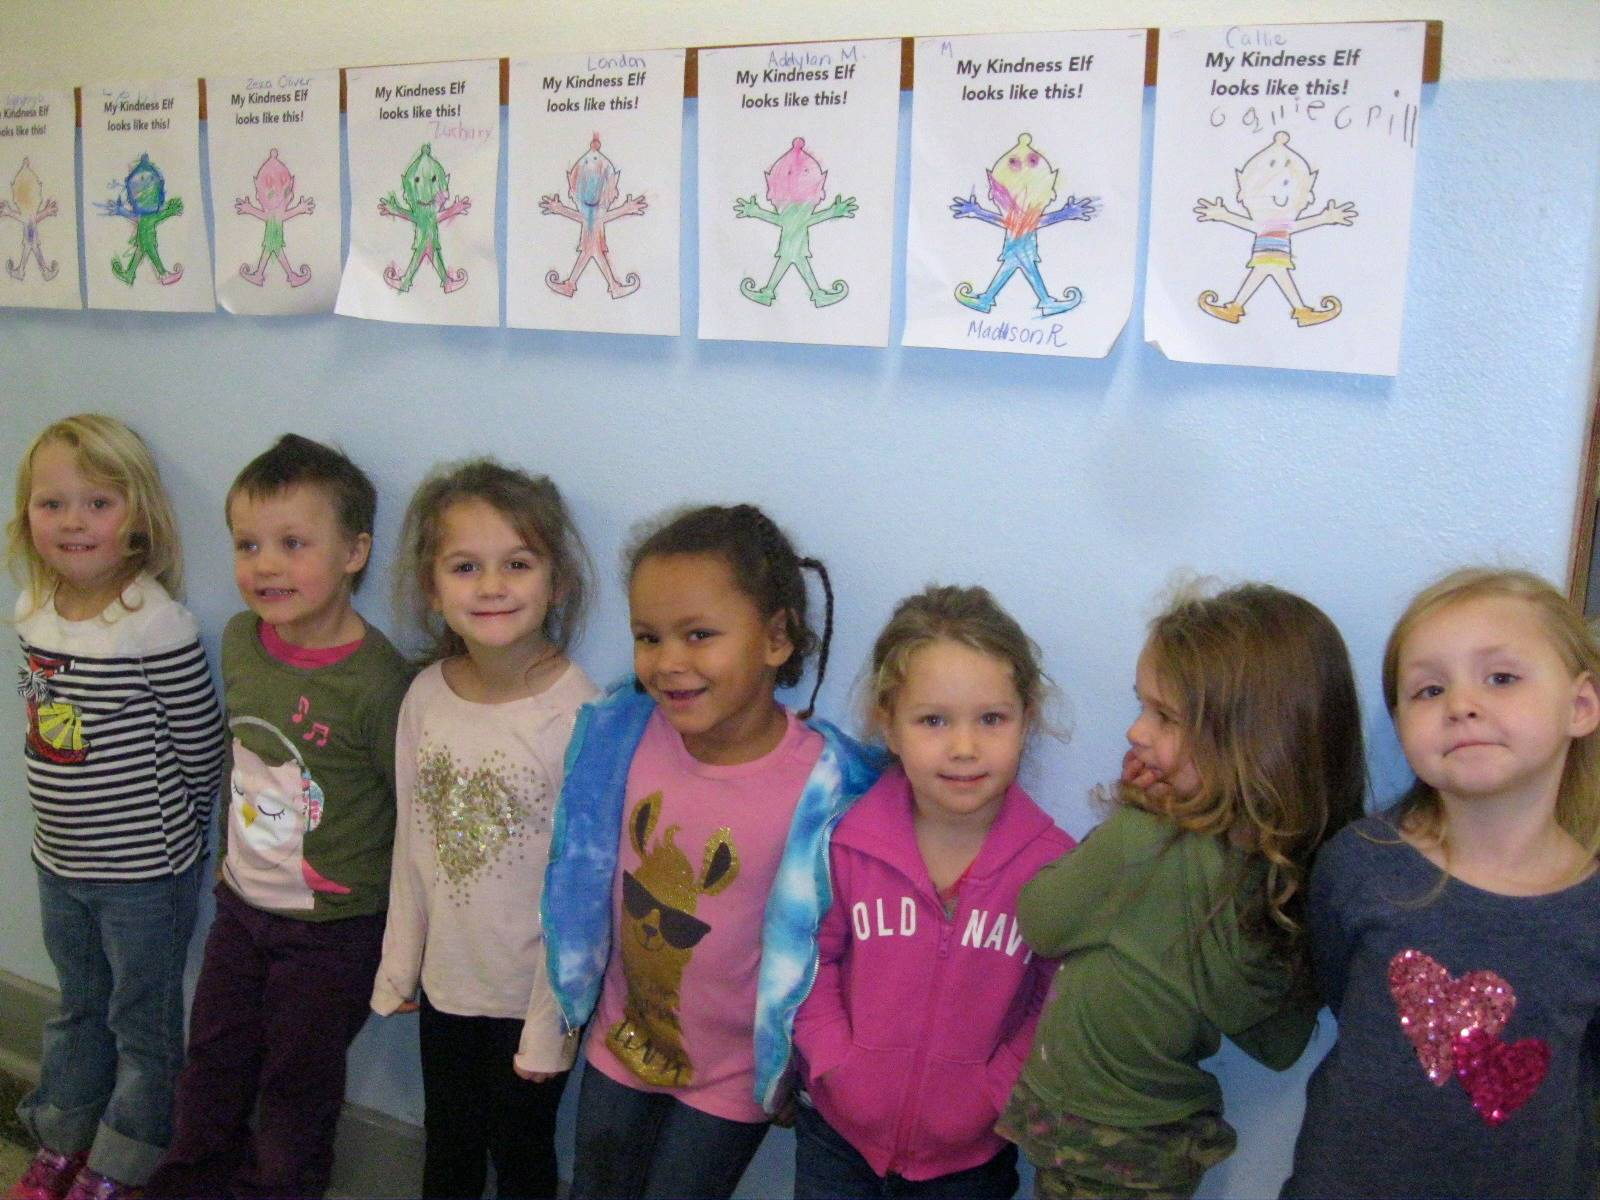 Students stand next to their Kindness Elf portraits.